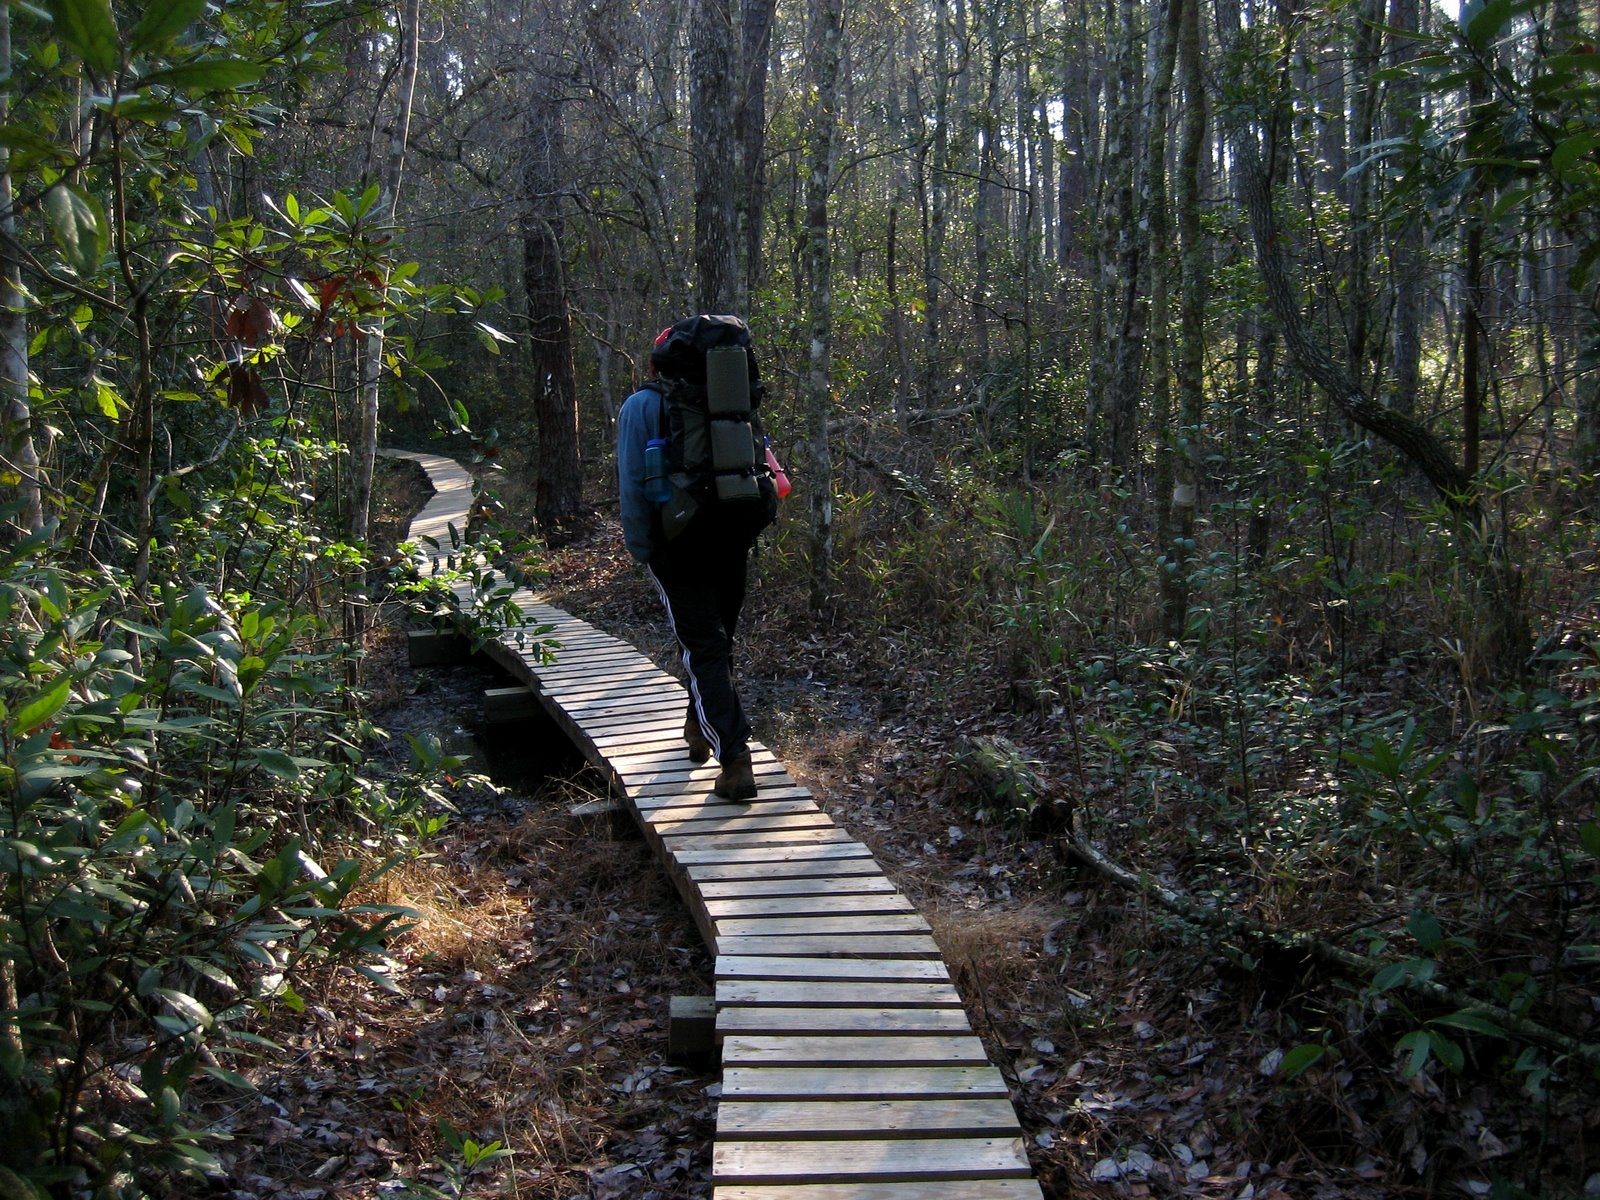 The trail section stretches from the ferry landing at Minnesott Beach to Mill Creek in the Croatan National Forest.